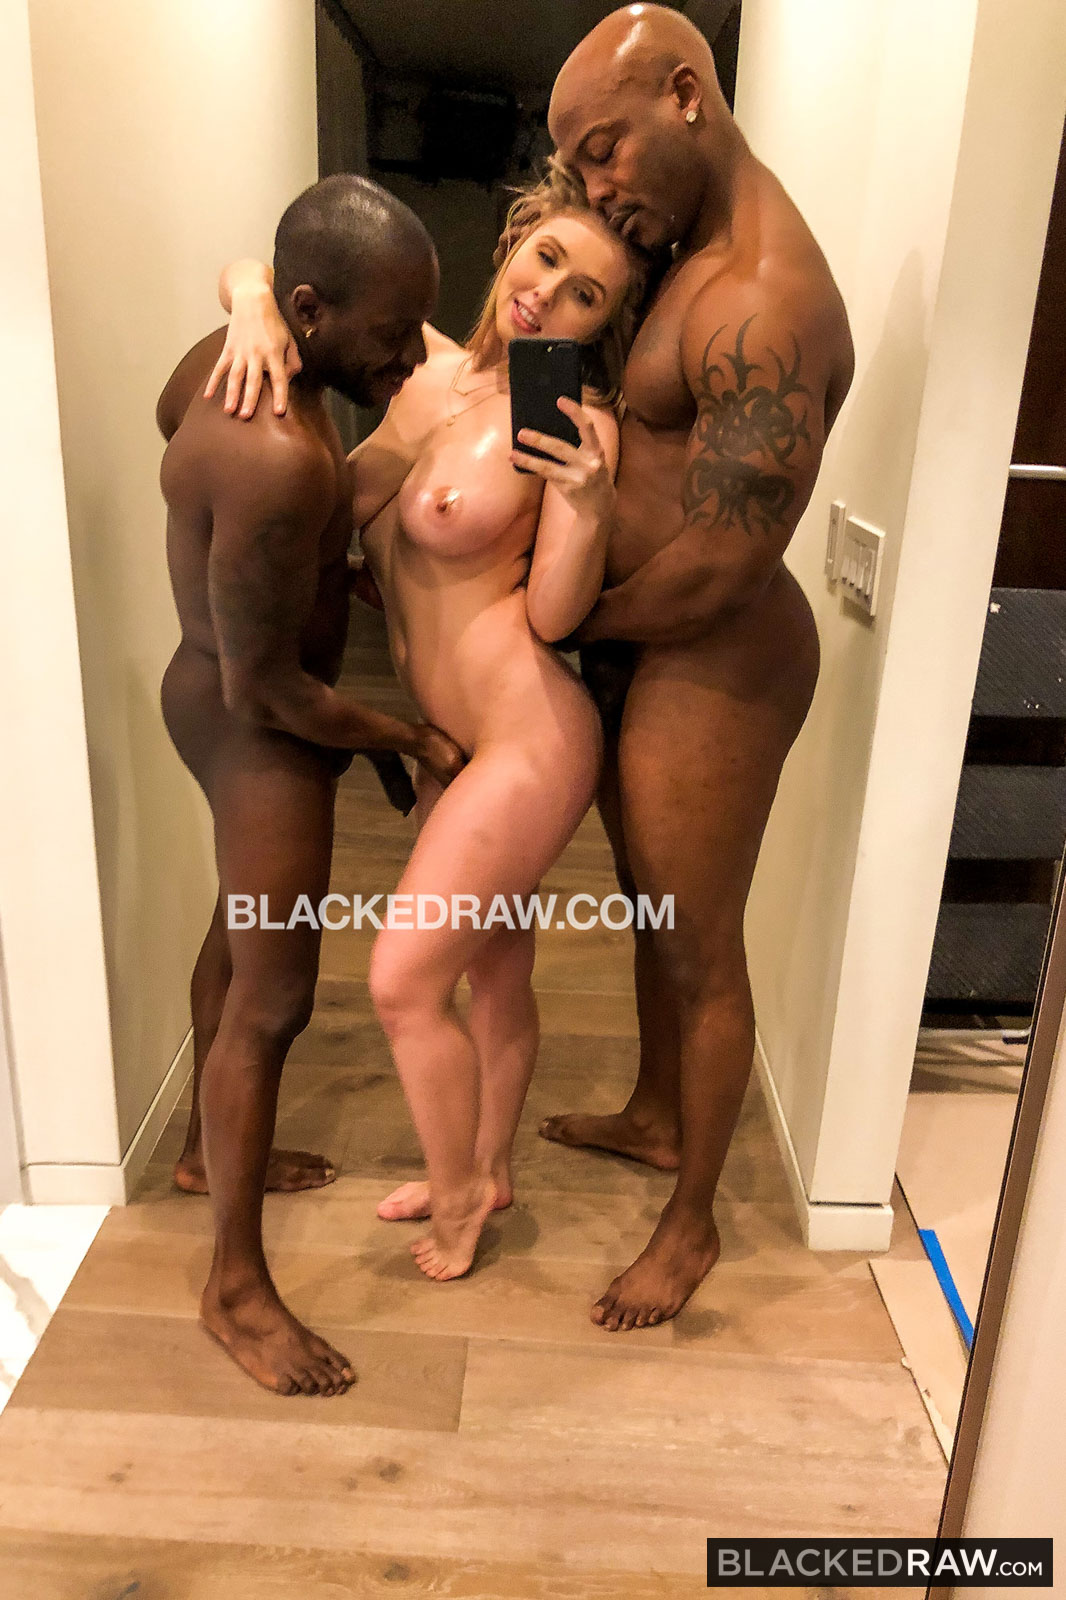 Blackedraw - lena paul - double bbc for me